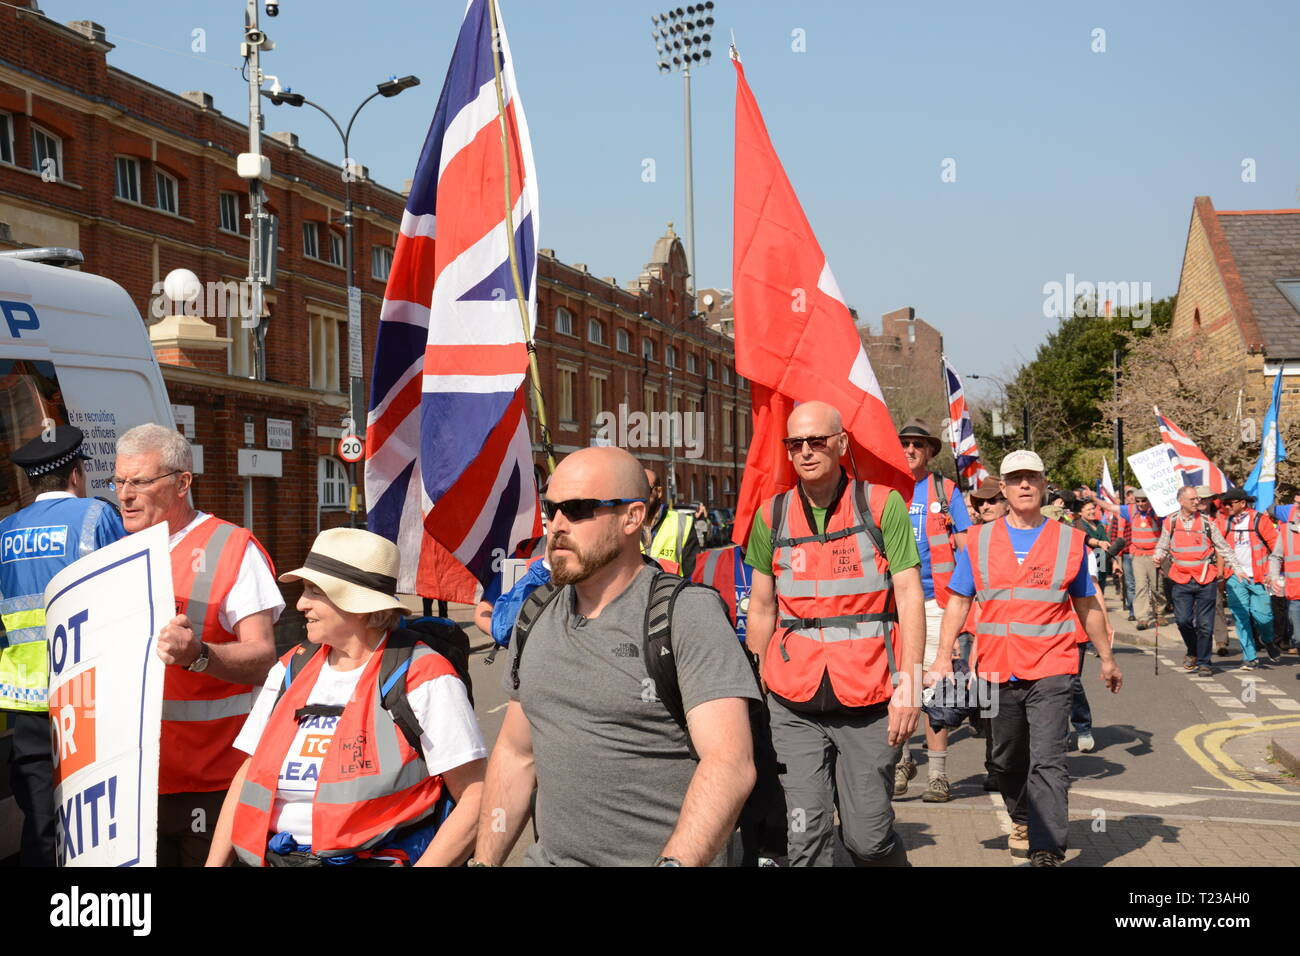 Leave Means Leave Rally on the day the UK was supposed to leave the EU - 29th March 2019. March to Leave arrives at Craven Cottage. - Stock Image